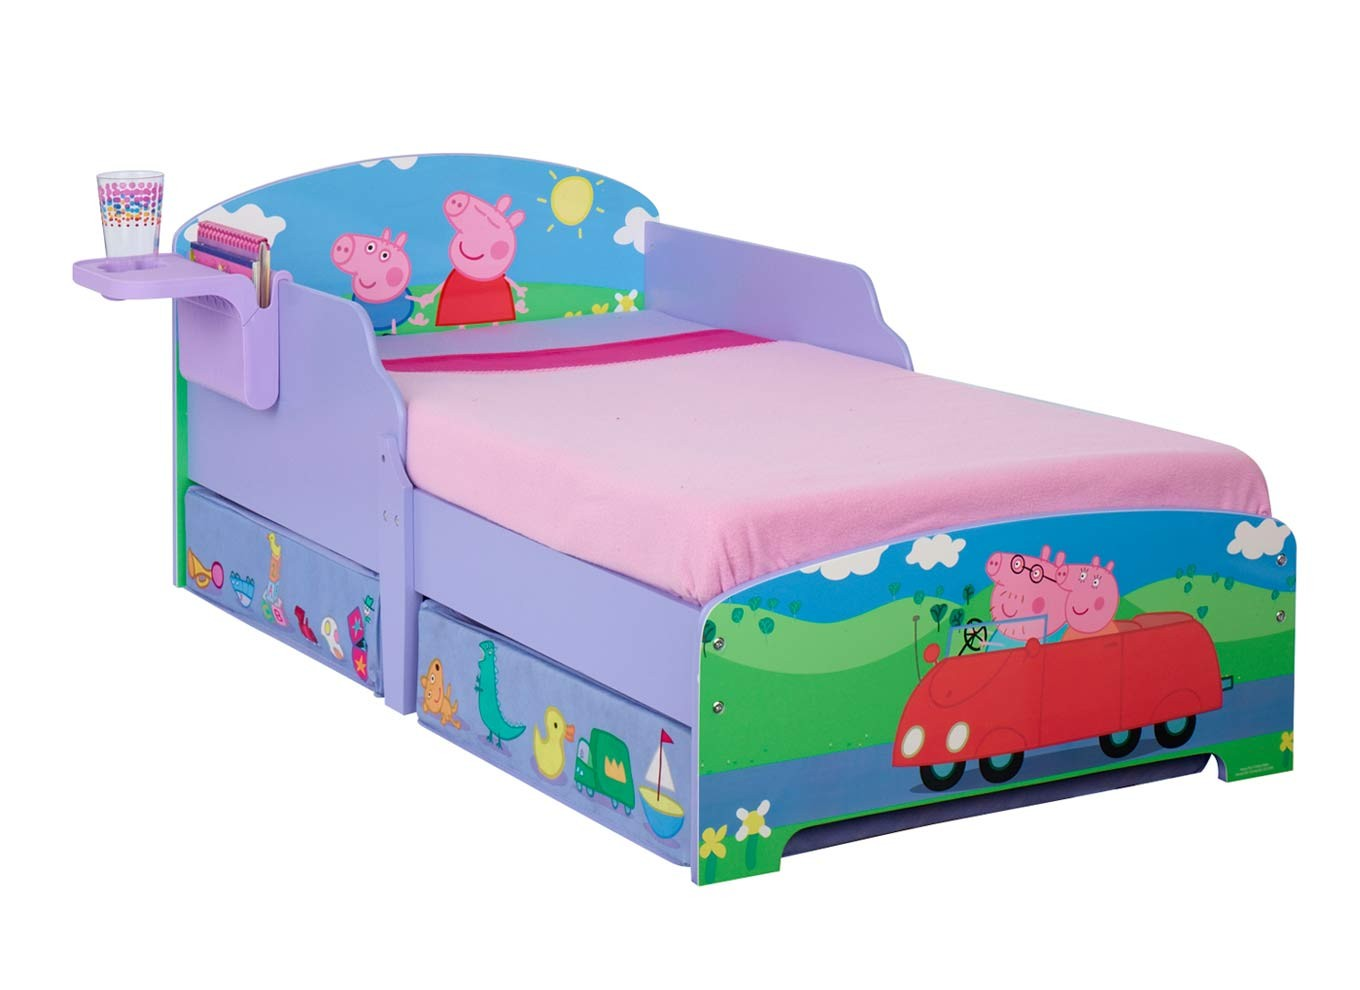 Cucina Peppa Pig Toys Decorate The Home With Peppa Pig Furniture Interior